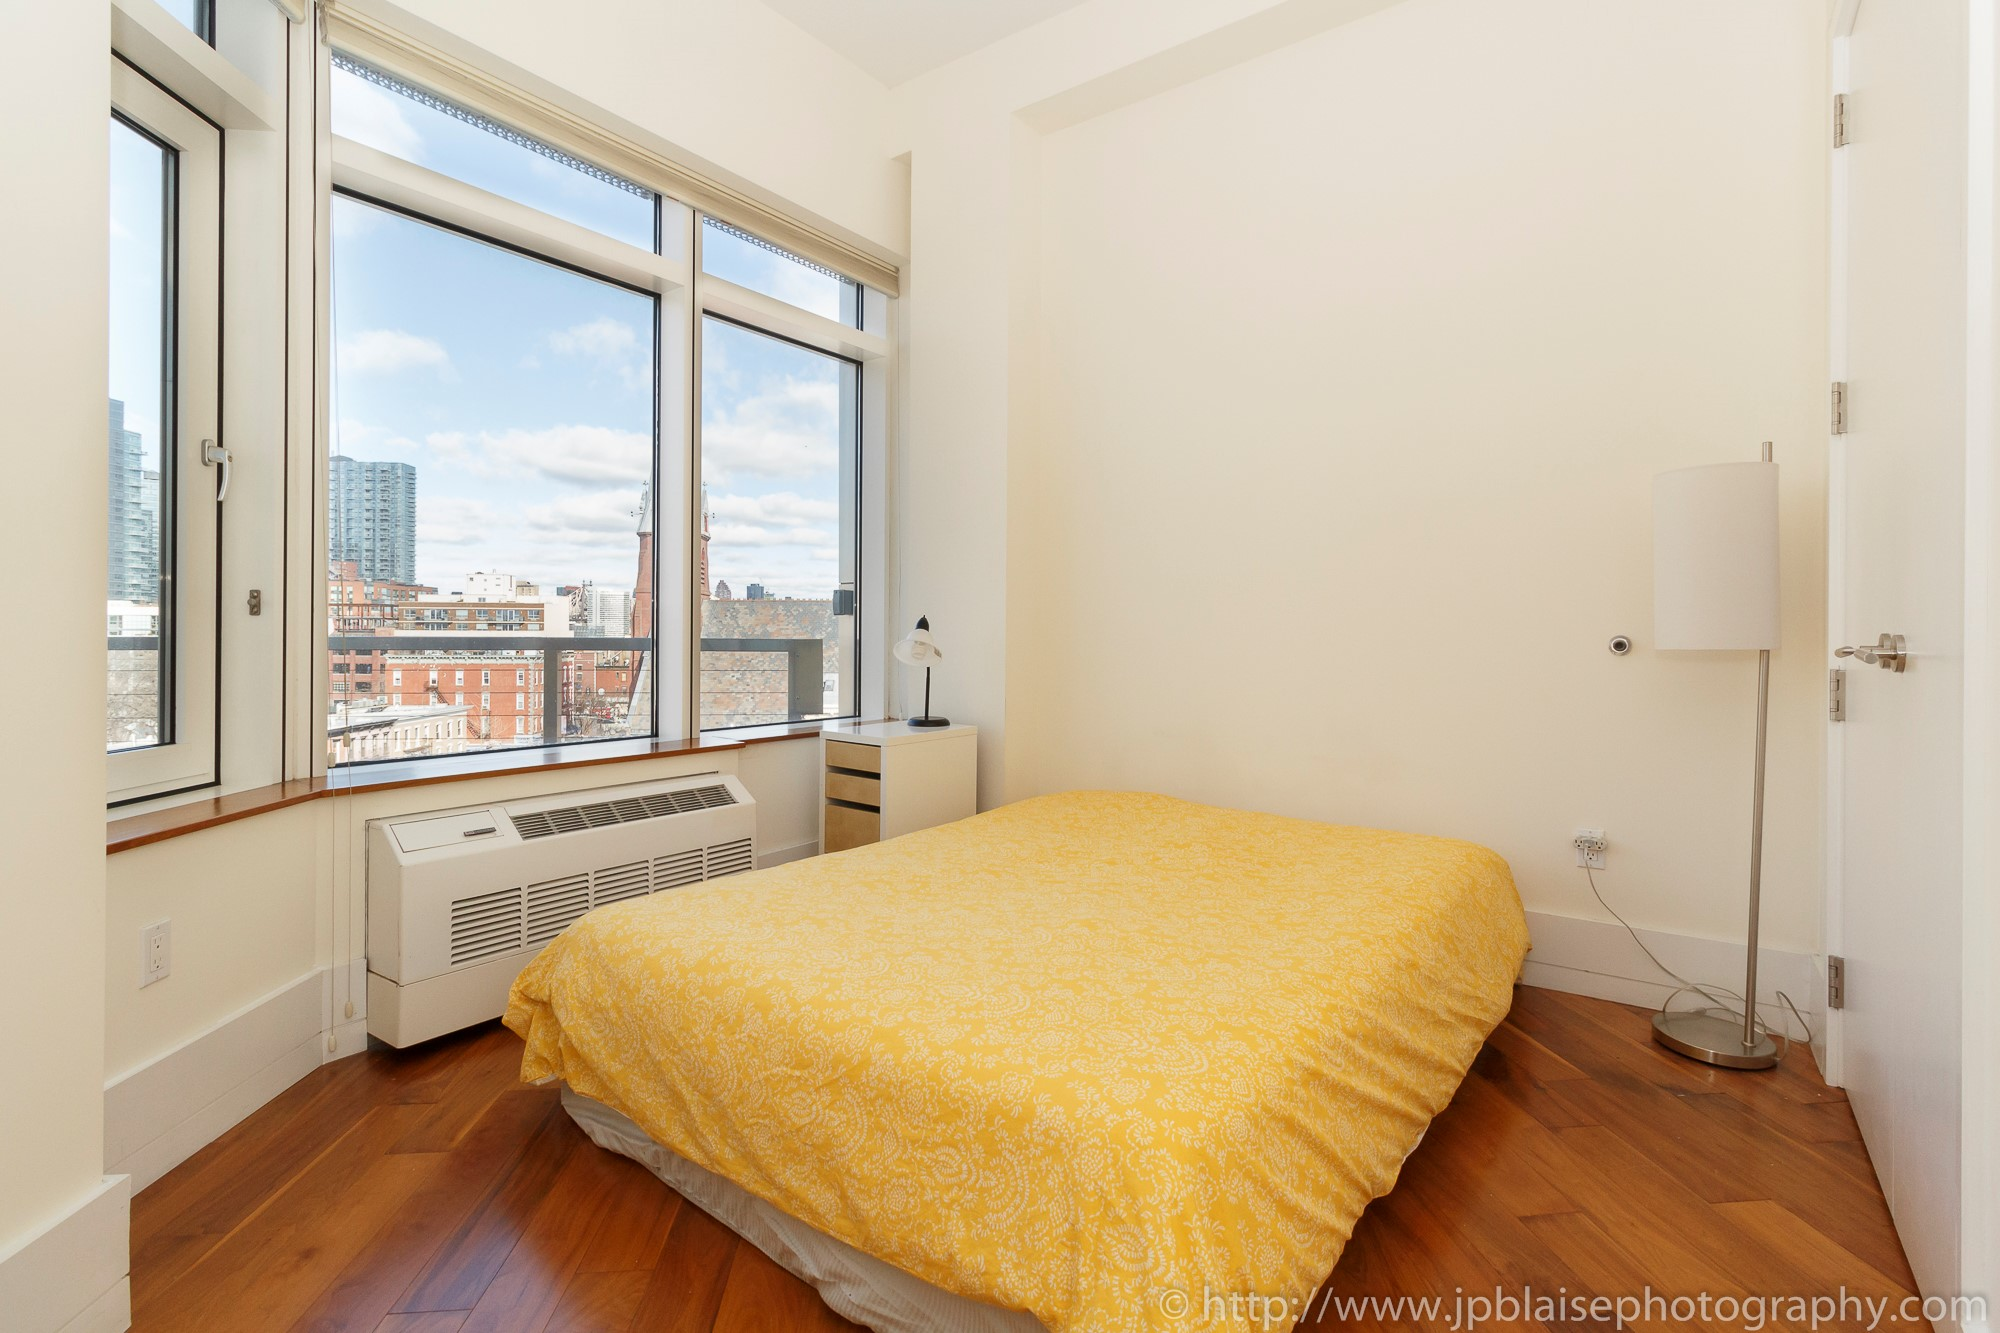 Nyc Apartment Photographer Session One Bedroom Condo Unit With Balcony And Magnificent Skyline